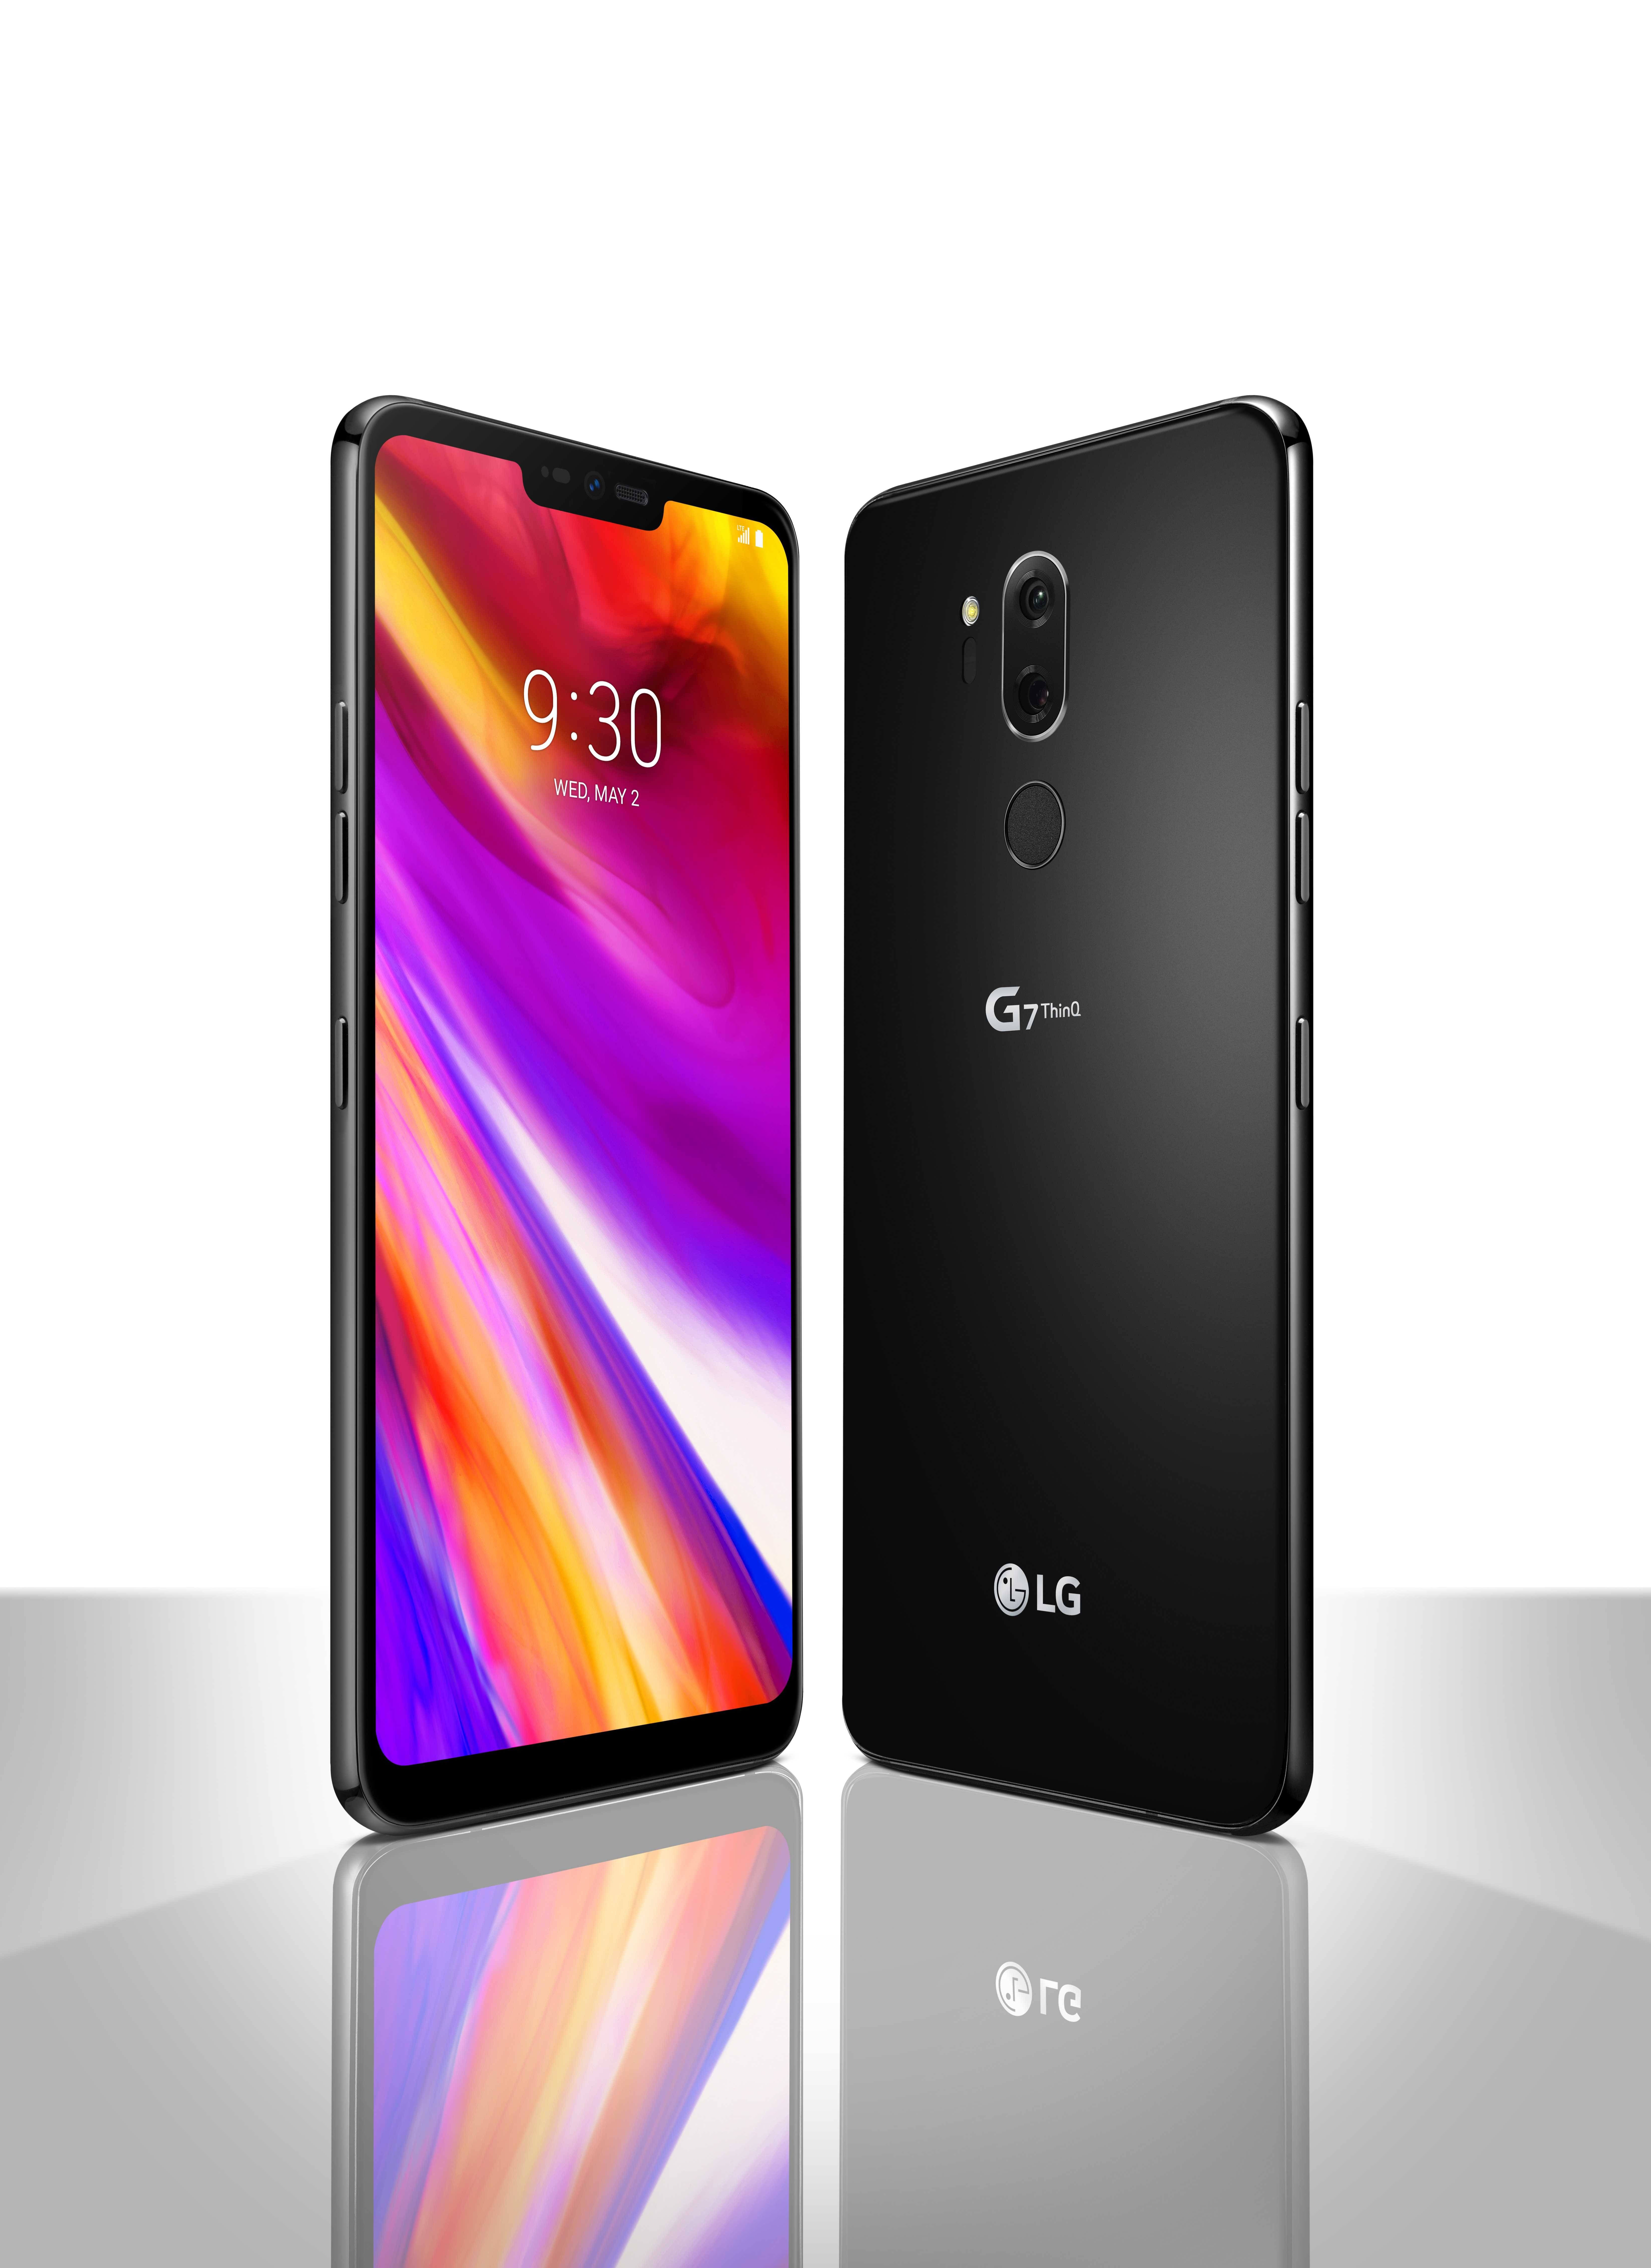 LG NewsroomLG G7 THINQ OFFERS DEEP AI INTEGRATION FOR MAXIMUM USER CONVENIENCE